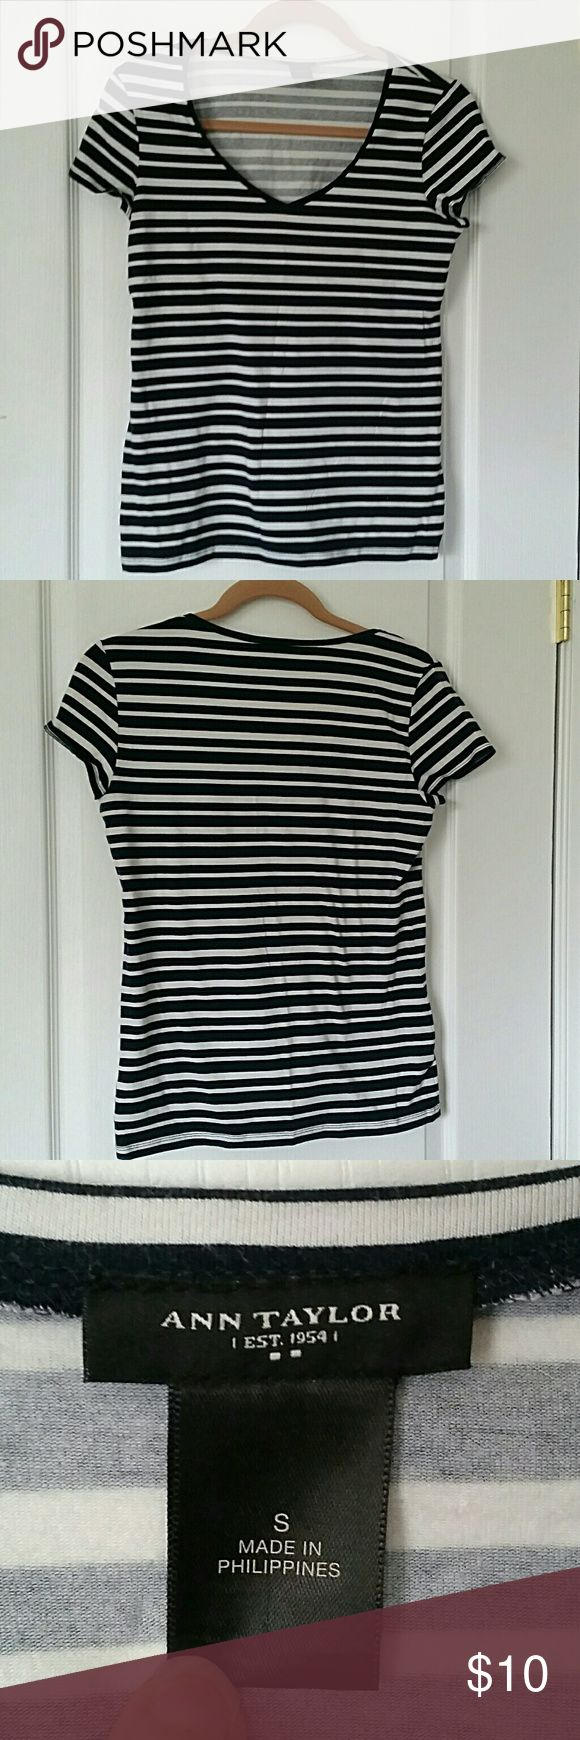 Ann Taylor Striped Nautical T-Shirt Cute and comfy from Ann Taylor!   Navy blue and white stripes, gently used. Stretchy and fitted, short sleeves, great for spring and summer! Ann Taylor Tops Tees - Short Sleeve